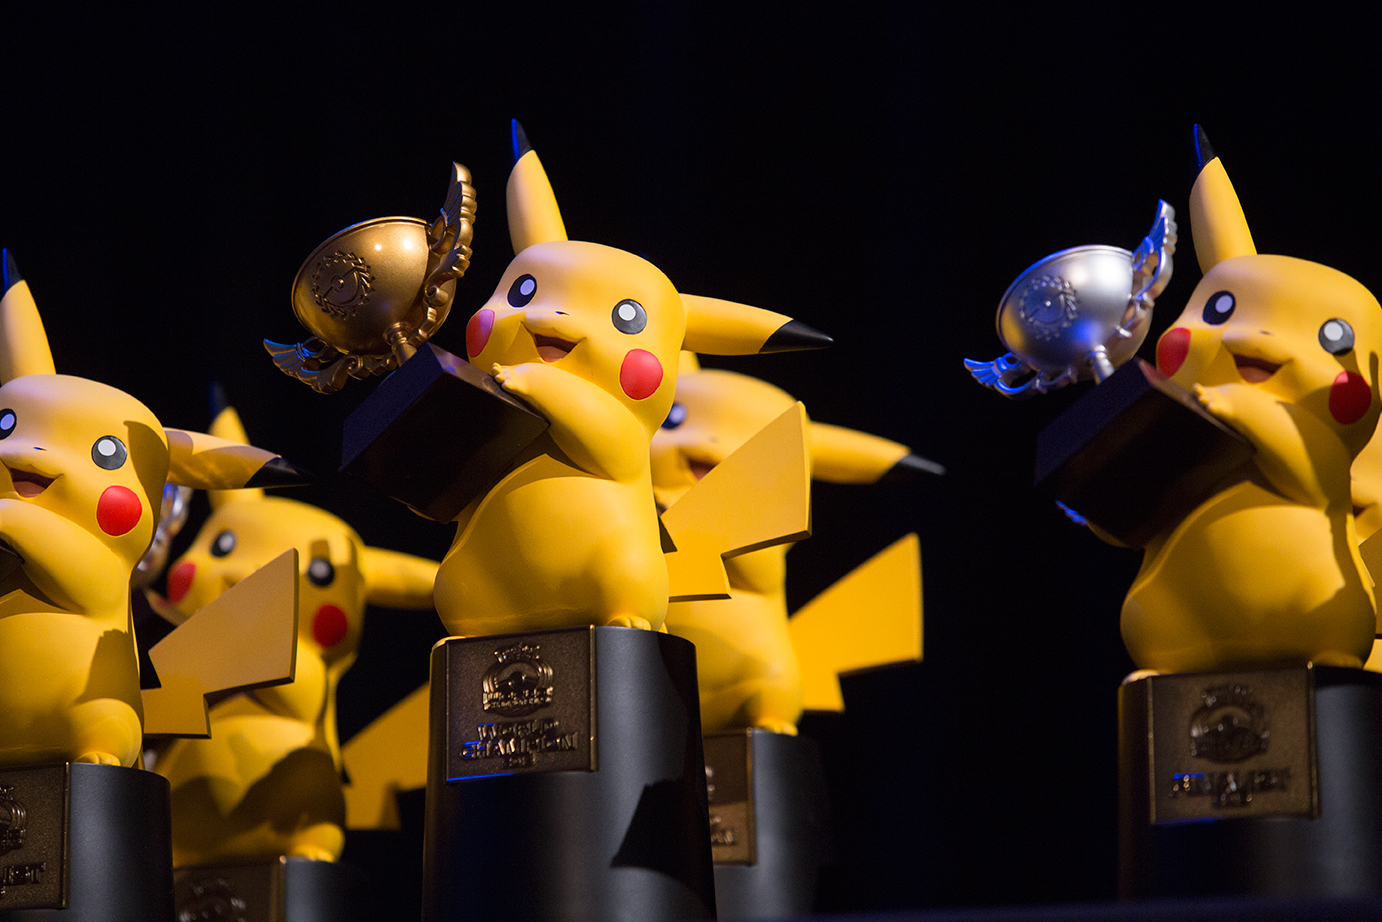 New Pokemon Champions Crowned